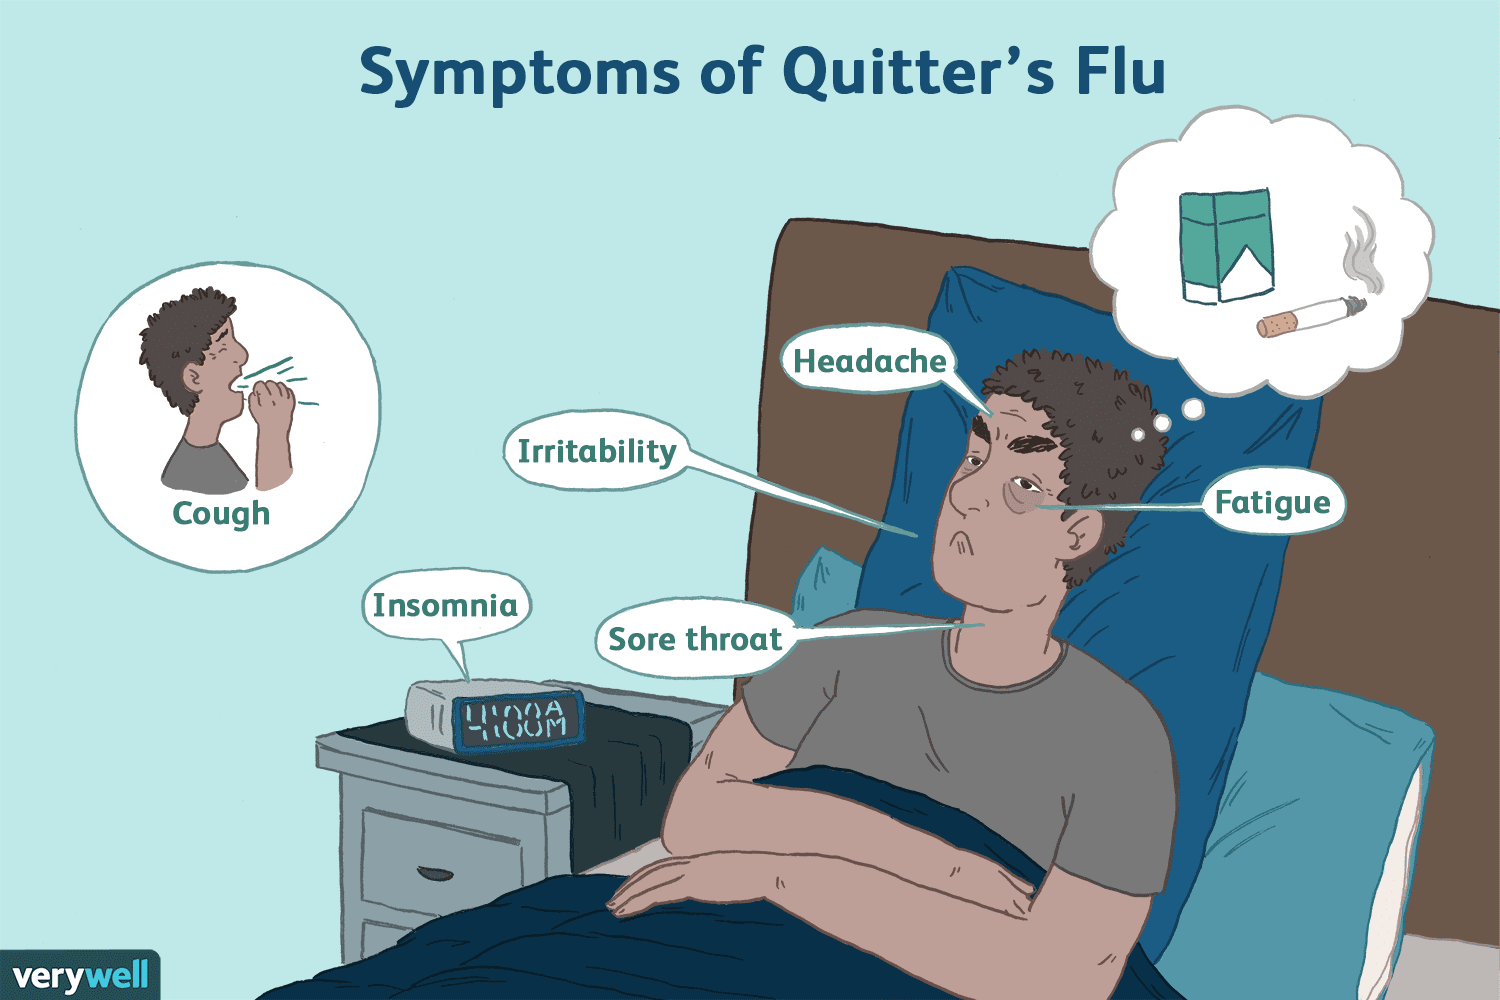 How to Know If You Have Quitter's or Smoker's Flu